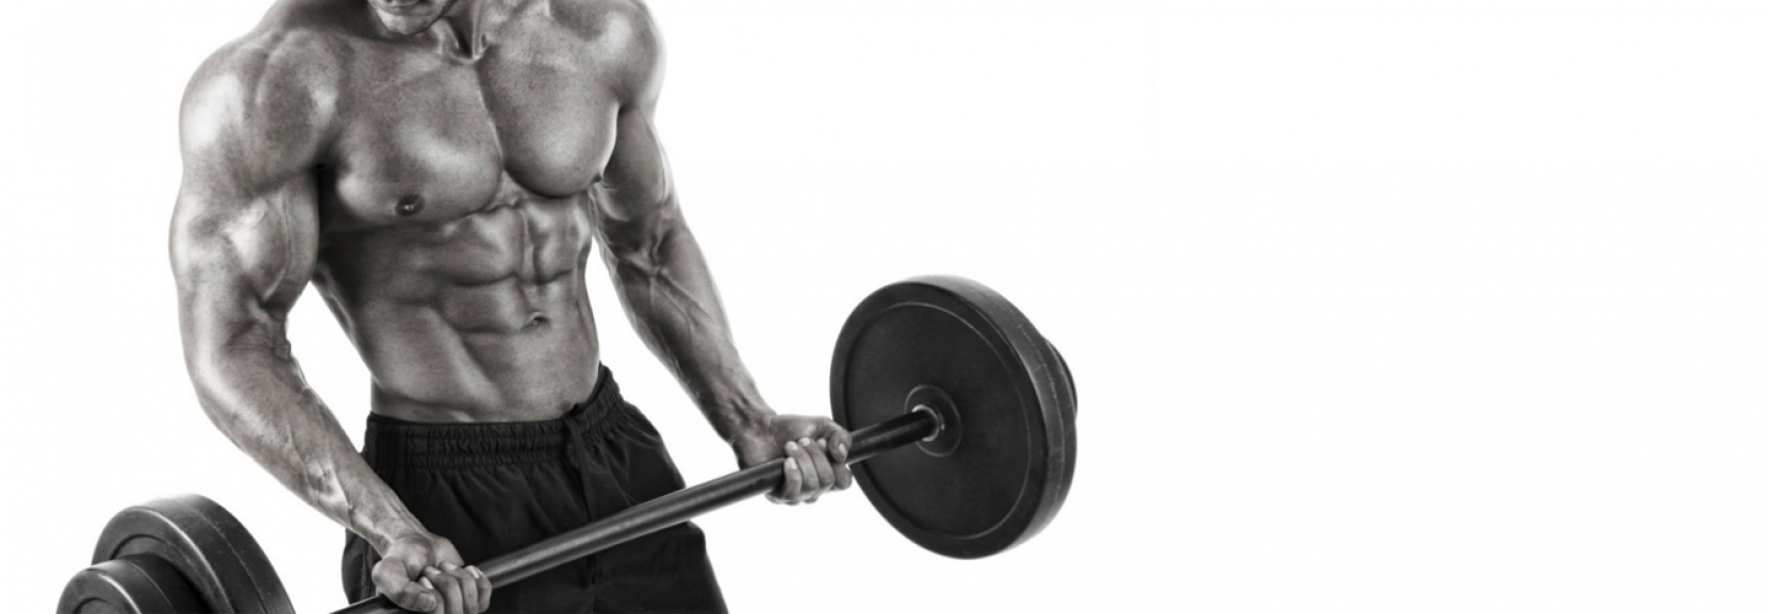 Peak Week: 4 Steps to Perfectly Polished Physique